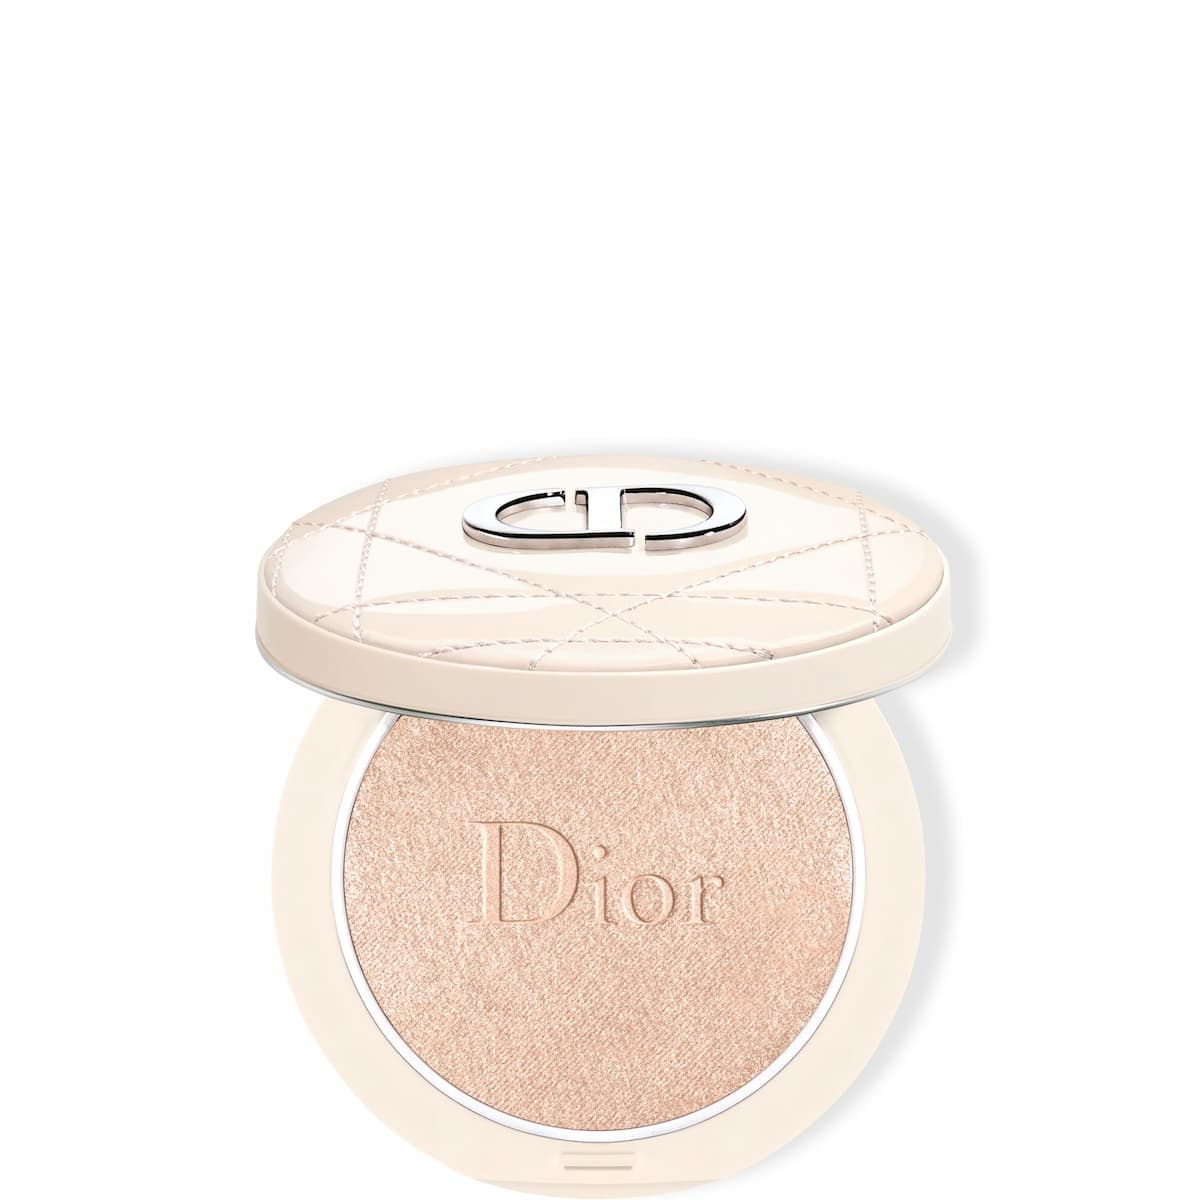 Dior Forever Couture Luminizer Highlighter